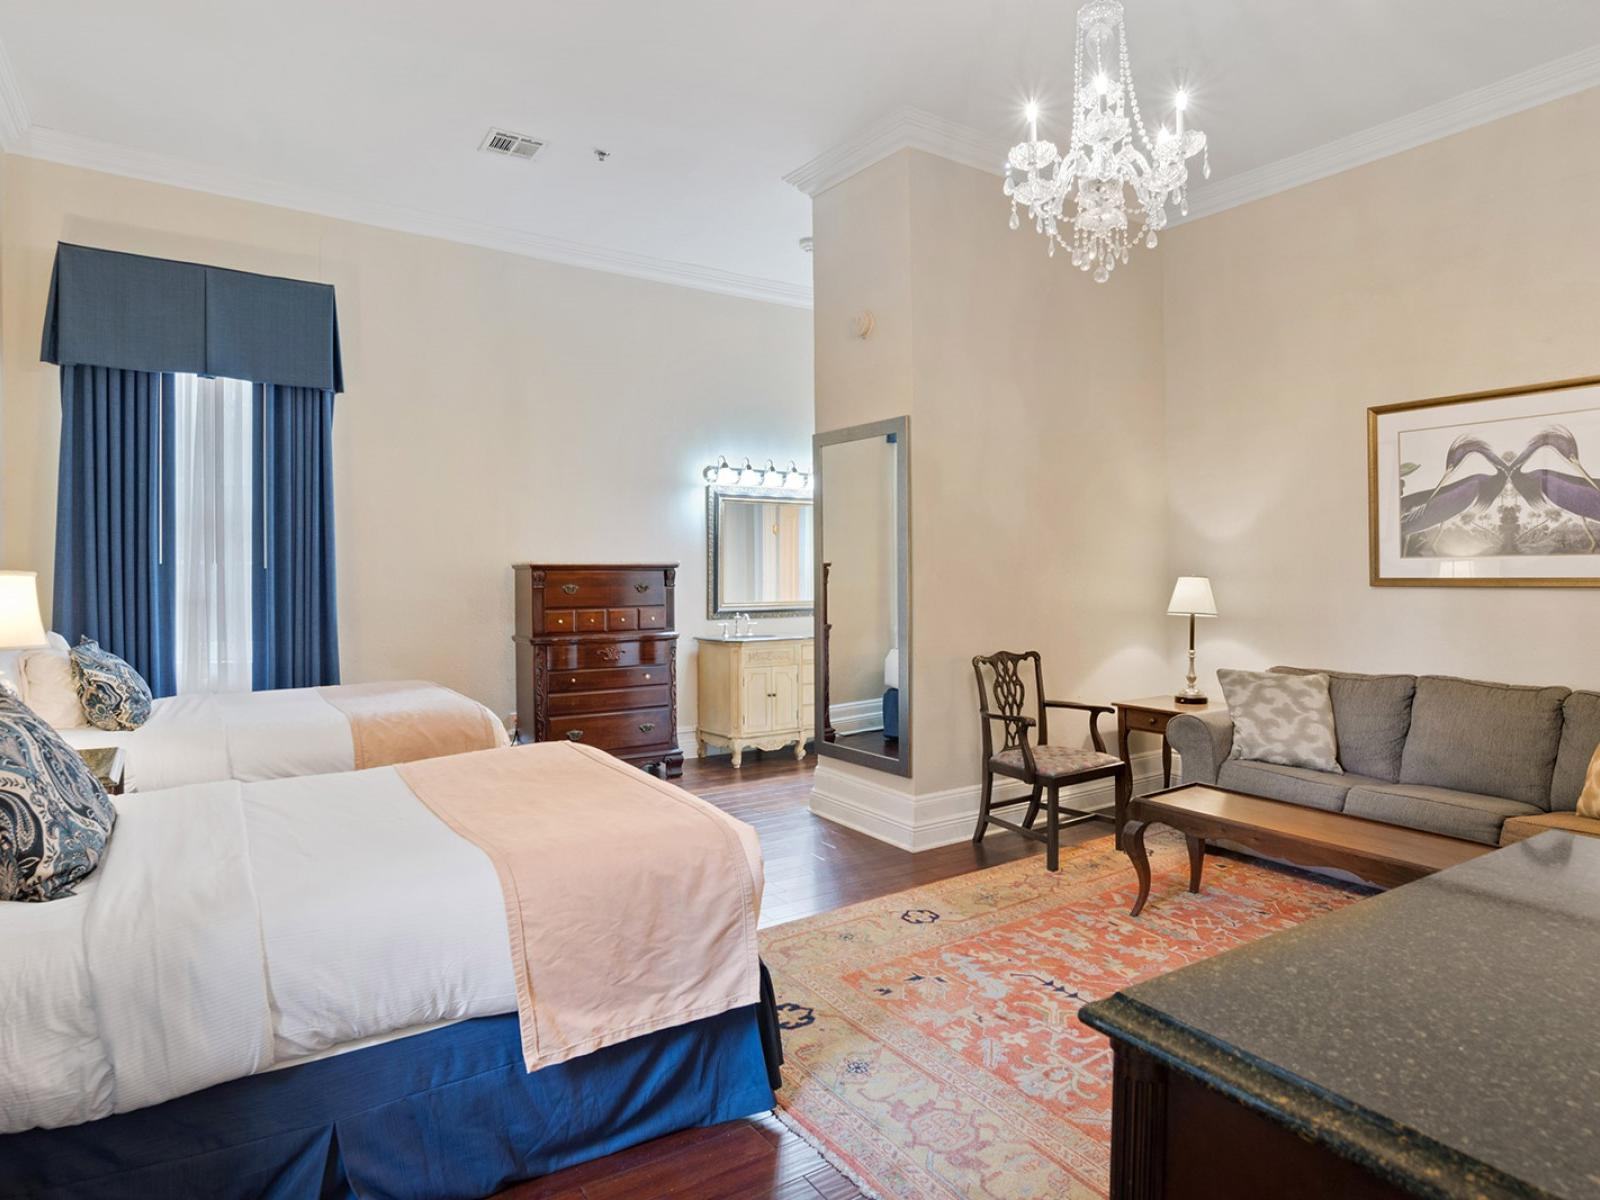 Junior Suite with two beds at Andrea Jackson Hotel